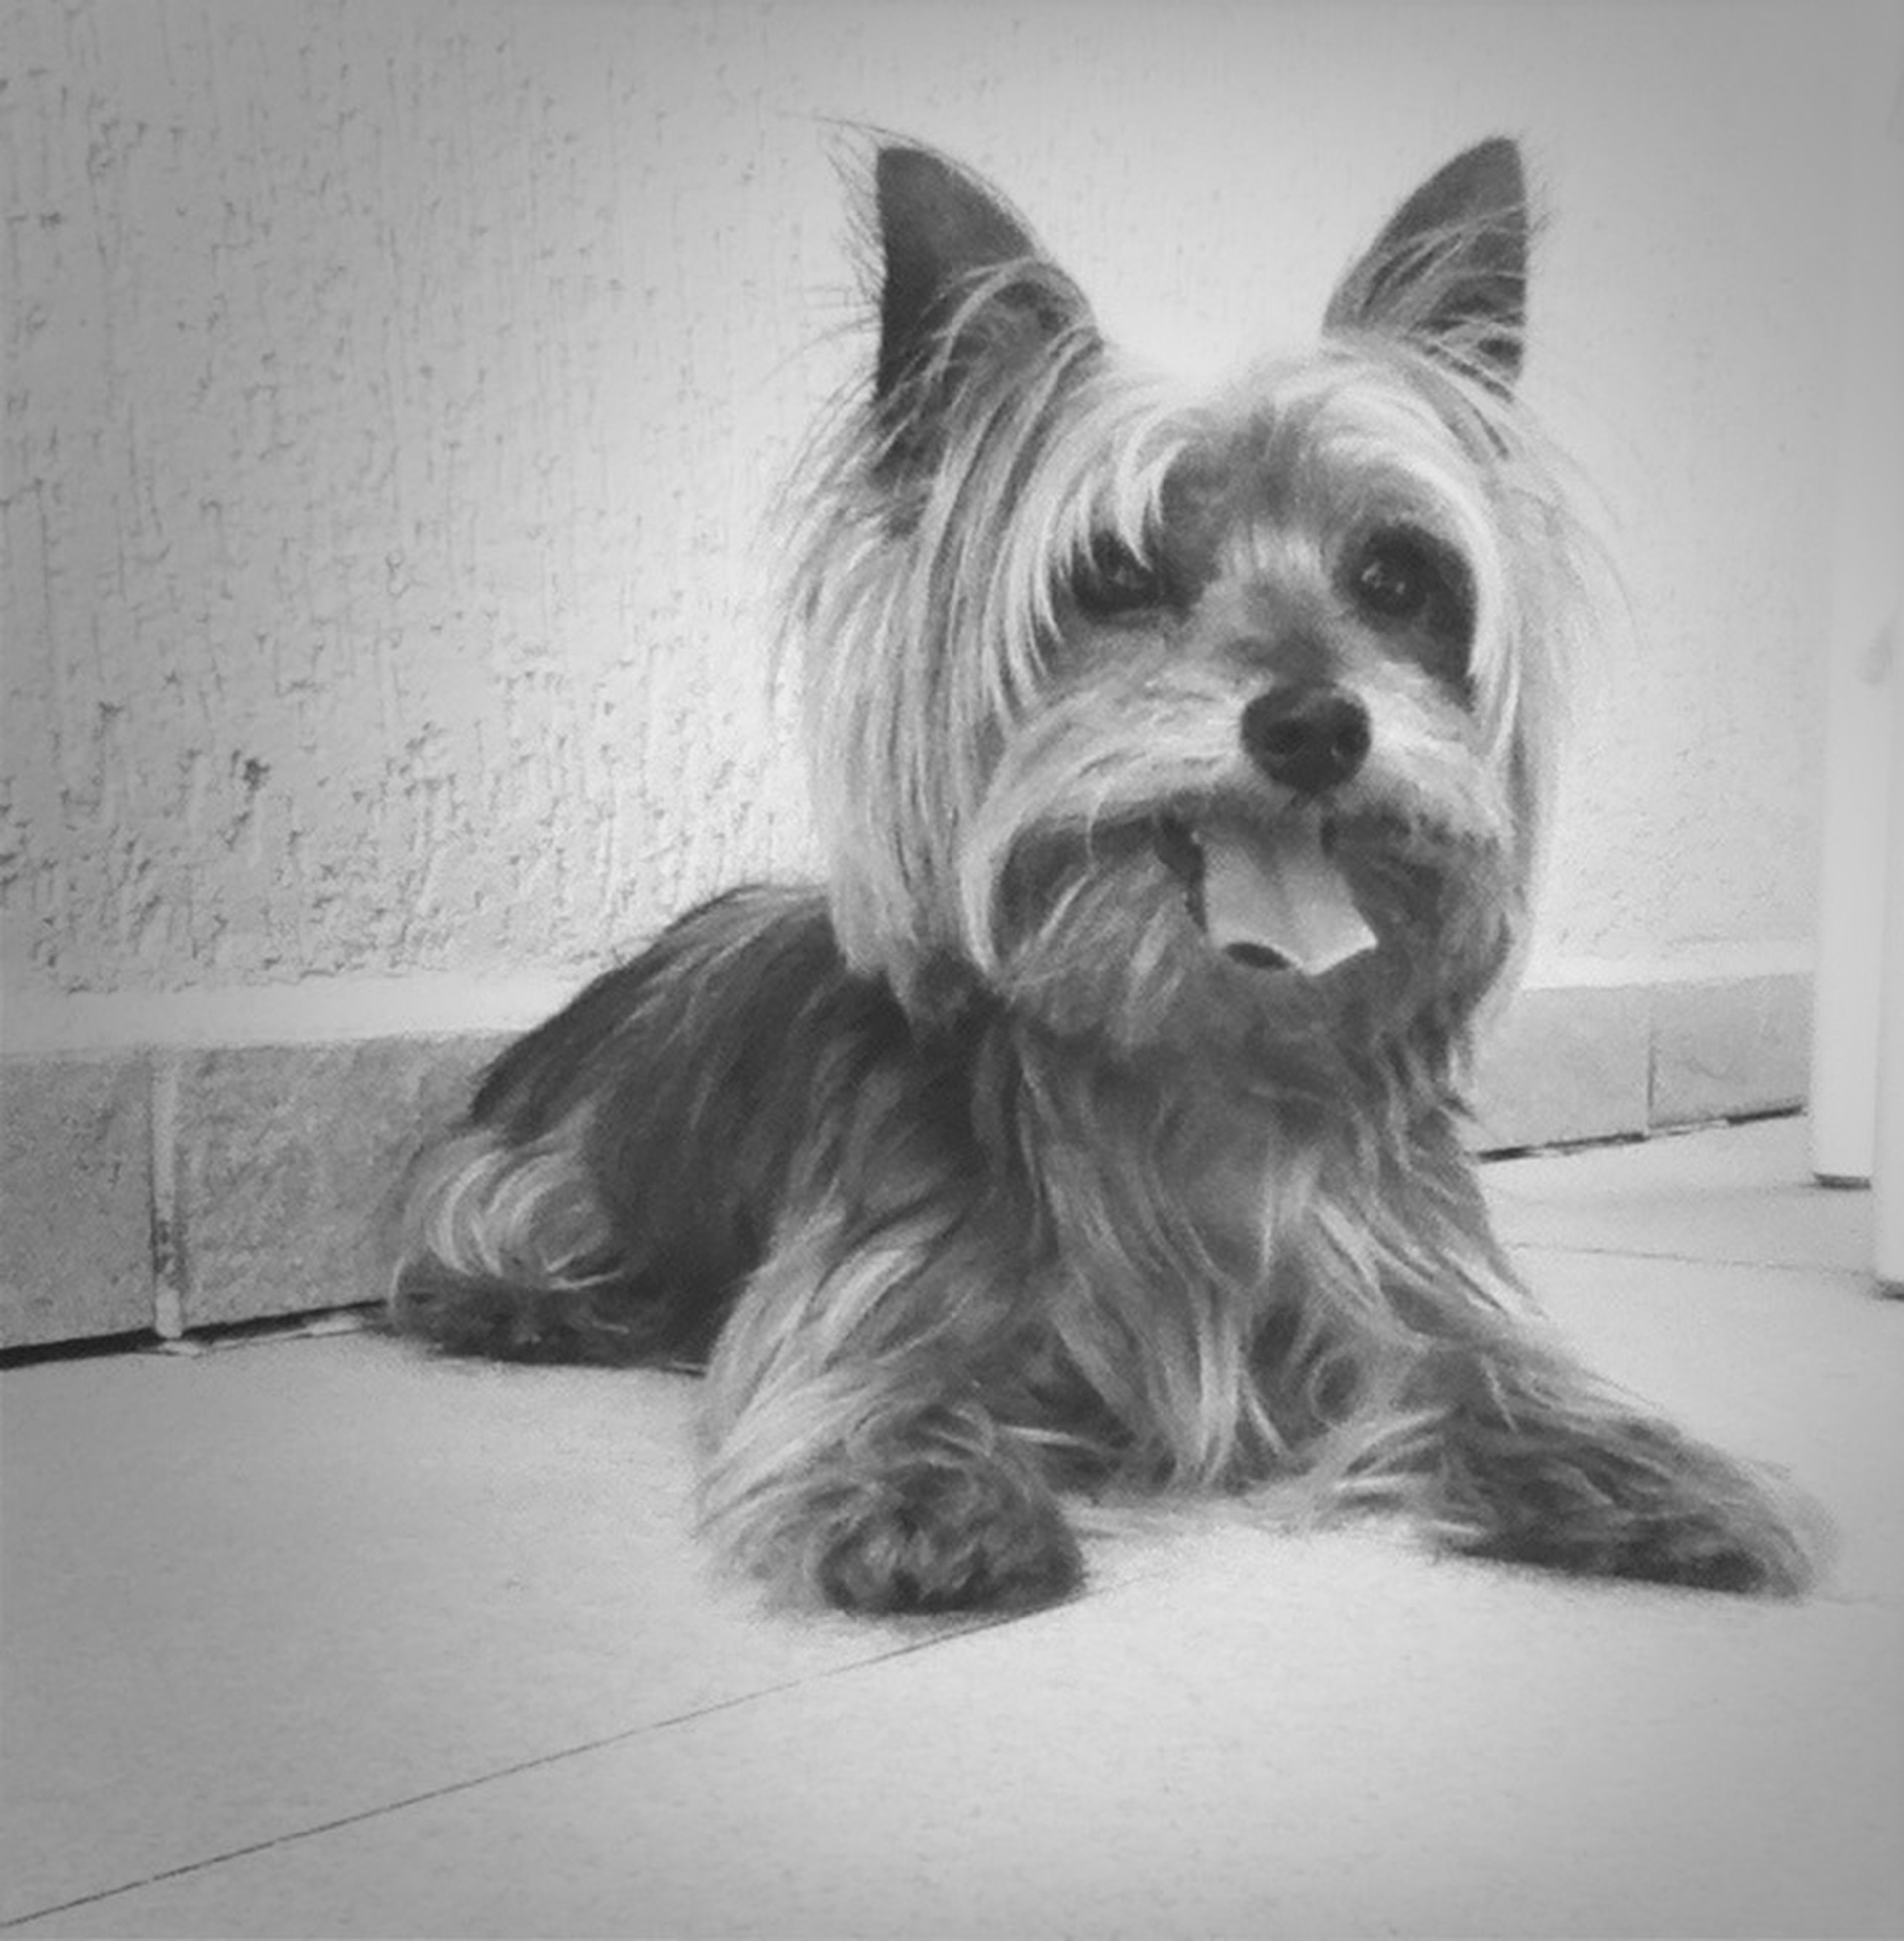 dog, pets, domestic animals, one animal, mammal, animal themes, portrait, indoors, animal hair, looking at camera, sitting, relaxation, home interior, loyalty, pampered pets, animal head, no people, cute, close-up, lying down